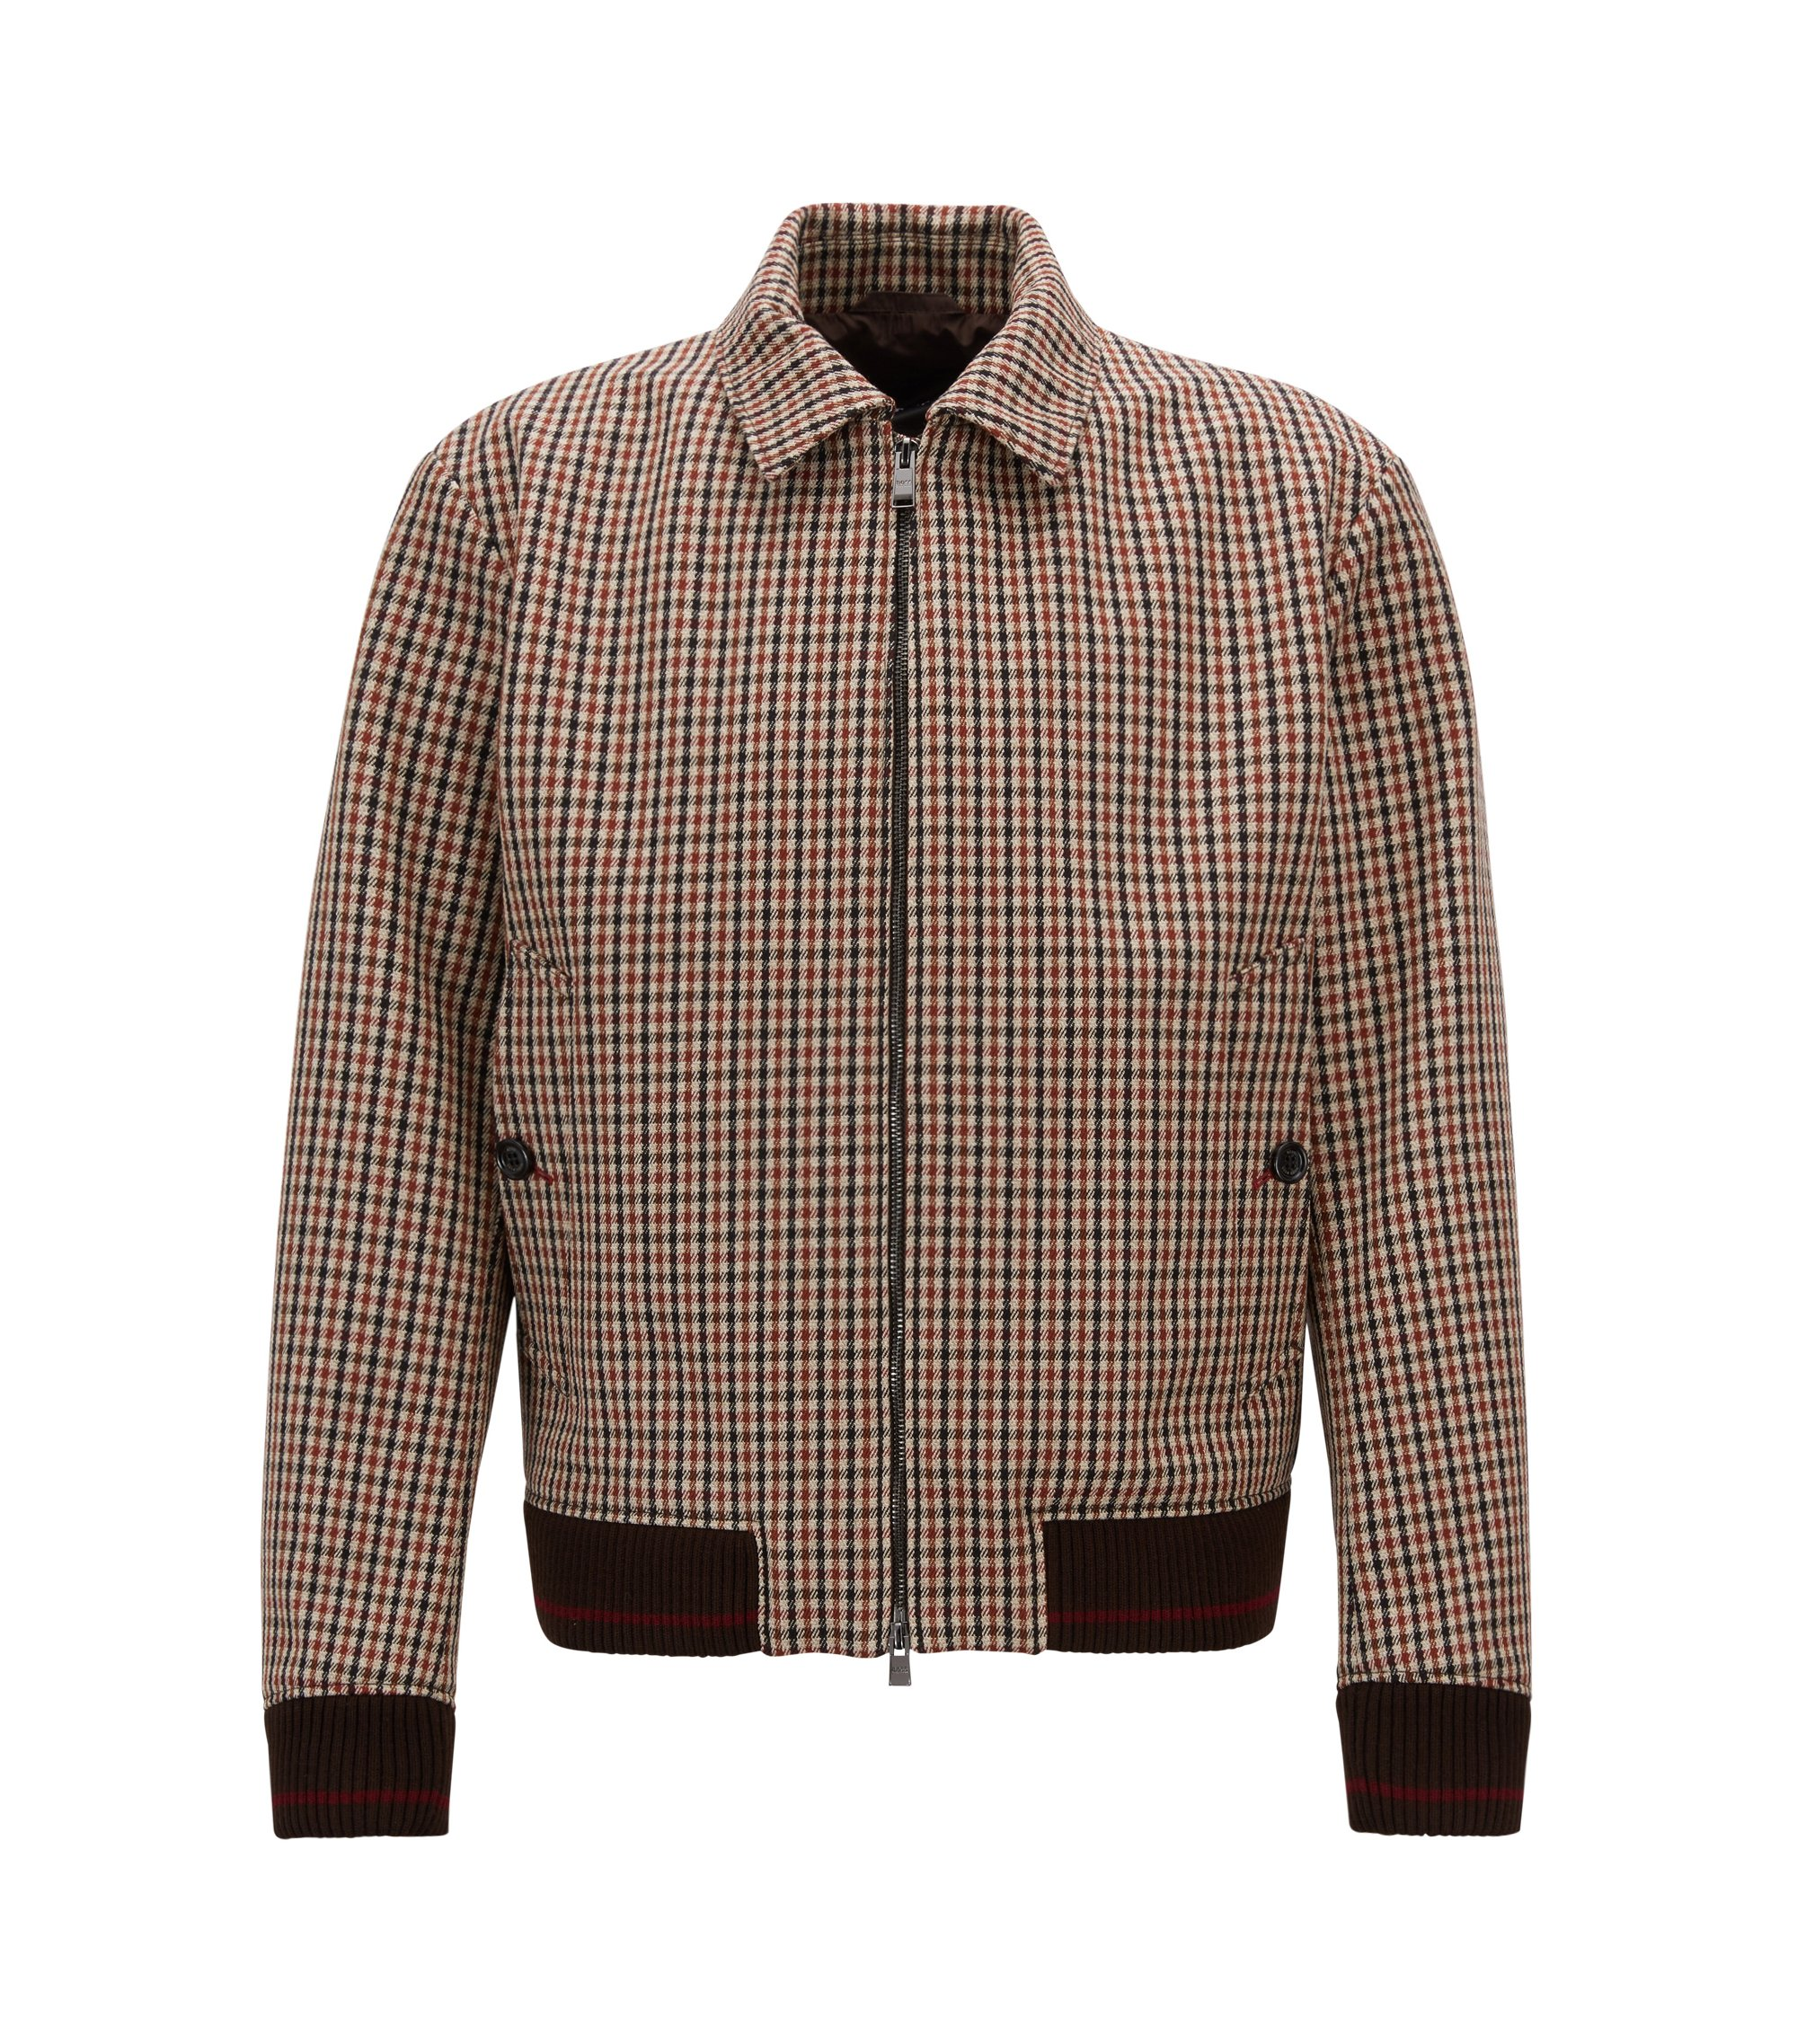 Blouson jacket in checkered wool-blend fabric, Light Brown